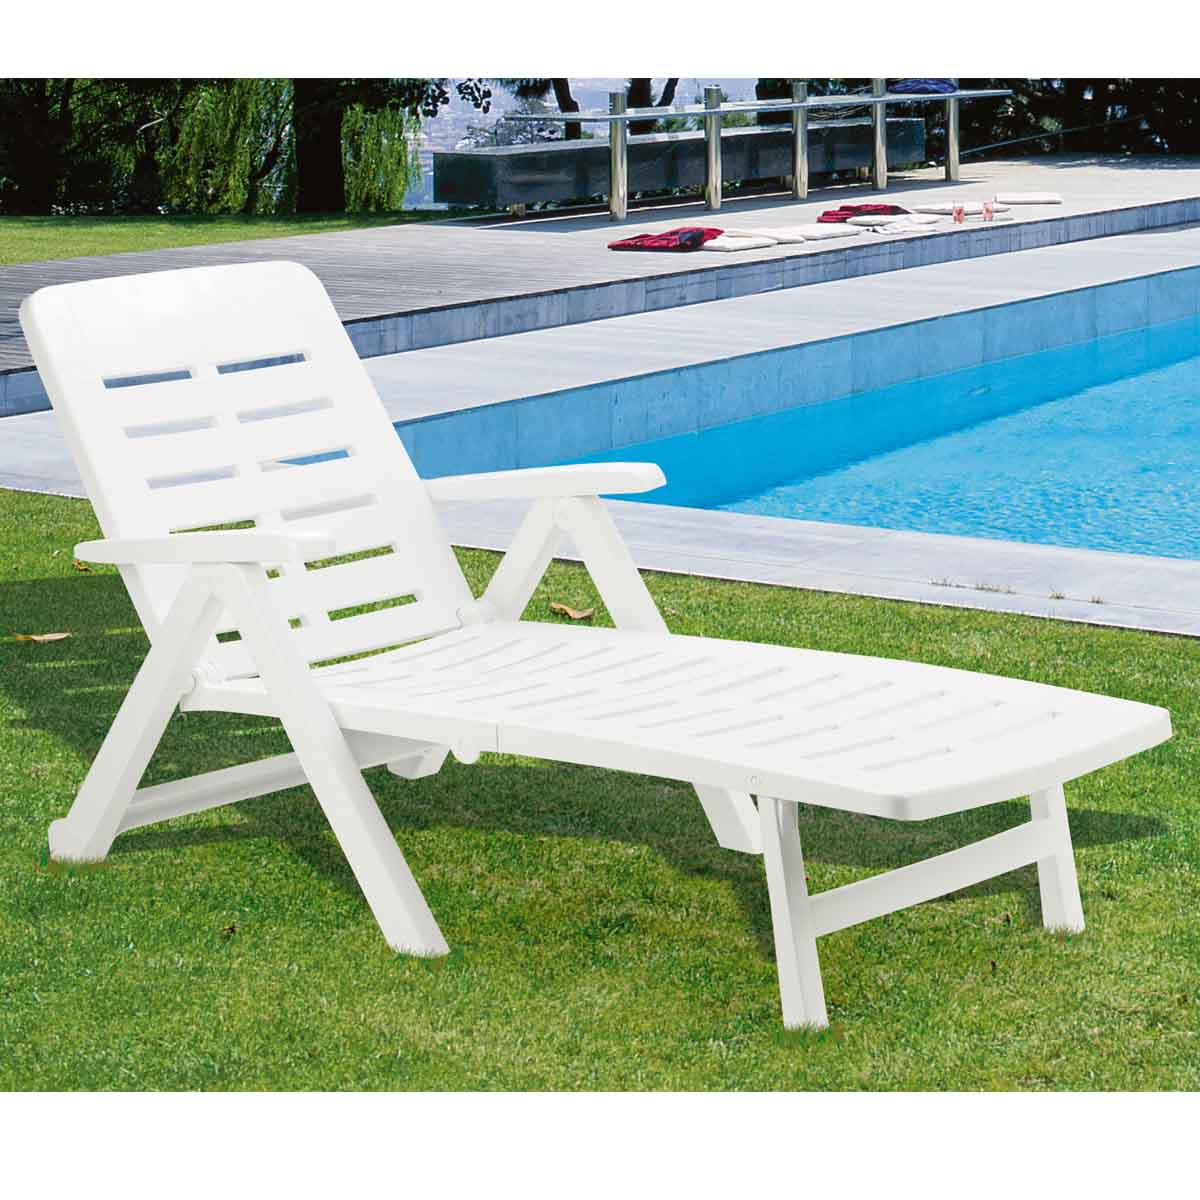 Chaise de jardin pvc photos de conception de maison for Chaise longue jardin pvc